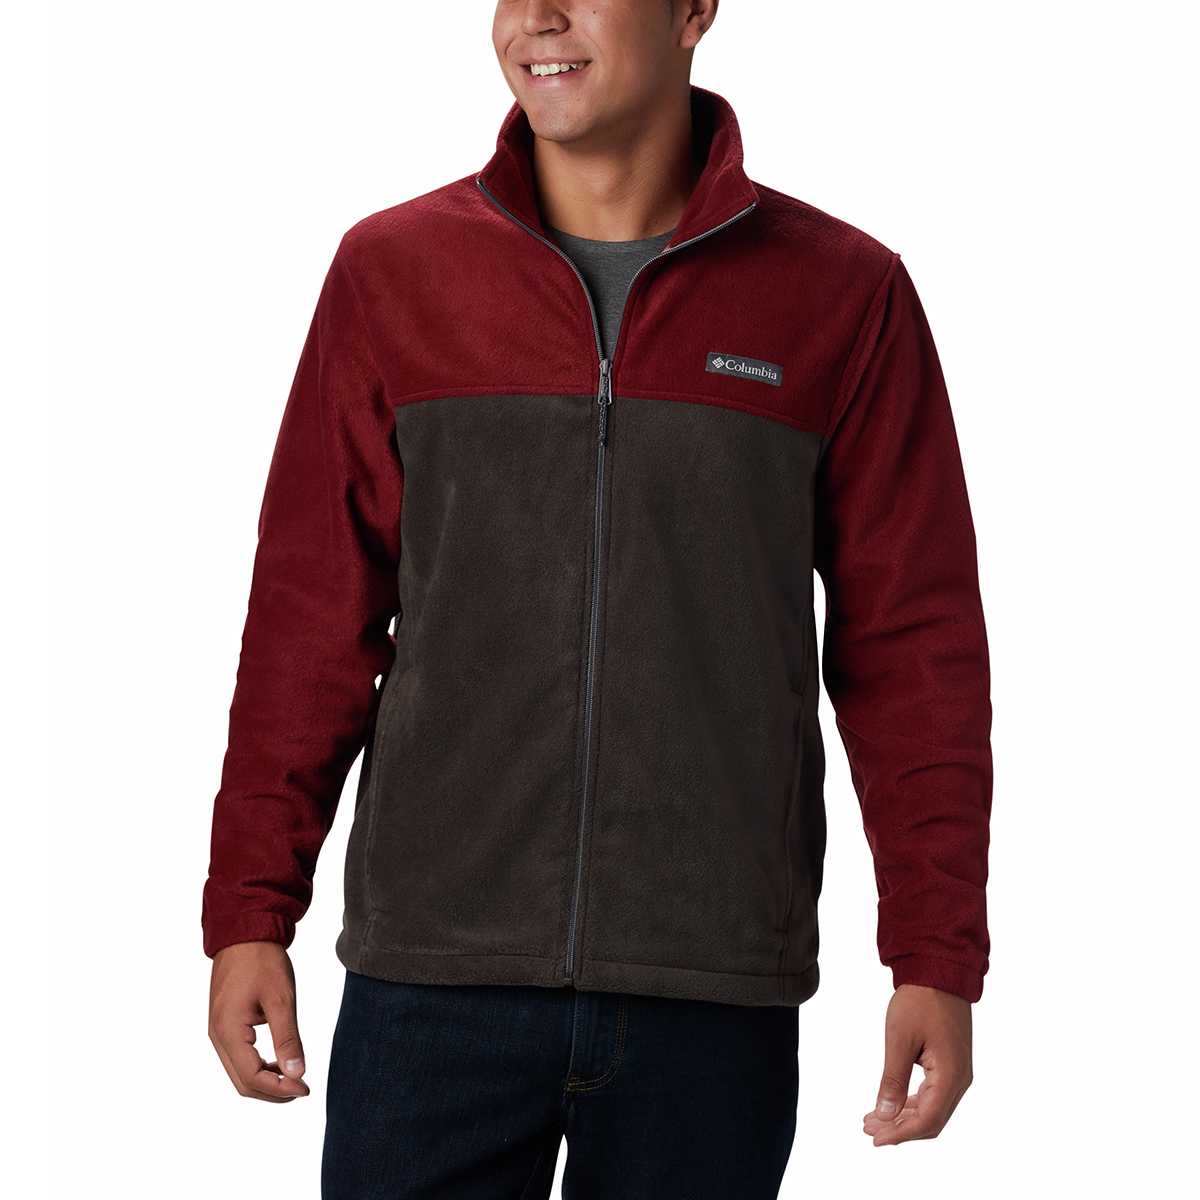 Columbia Men's Steens Mountain Full-Zip  2.0 Fleece Jacket - Red, XL